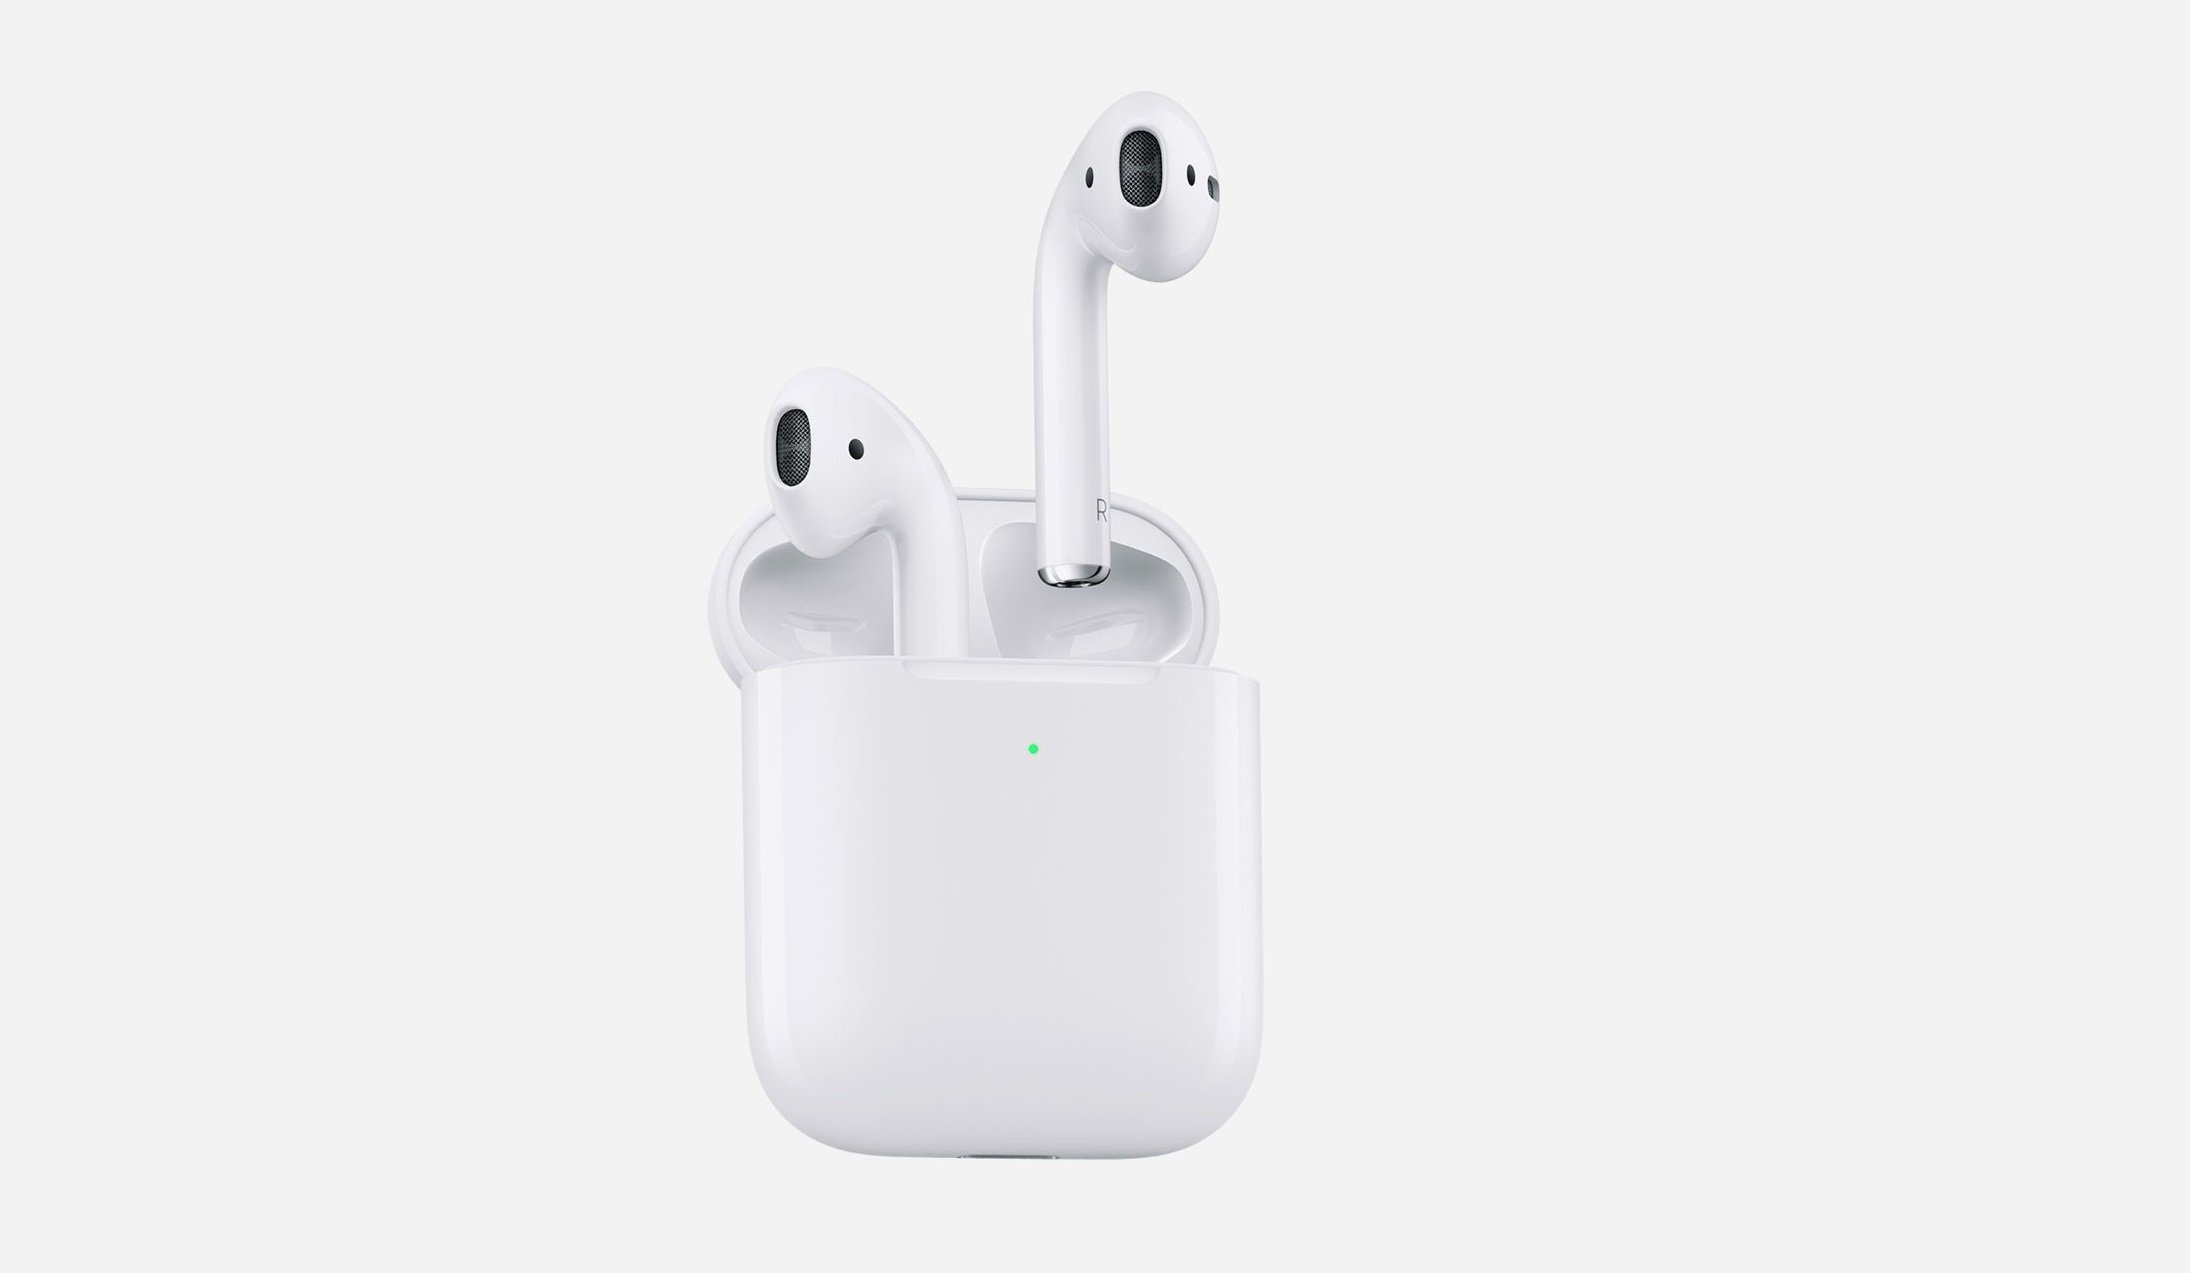 Target will also have deals on Apple products including AirPods and the 10.2-inch iPad.